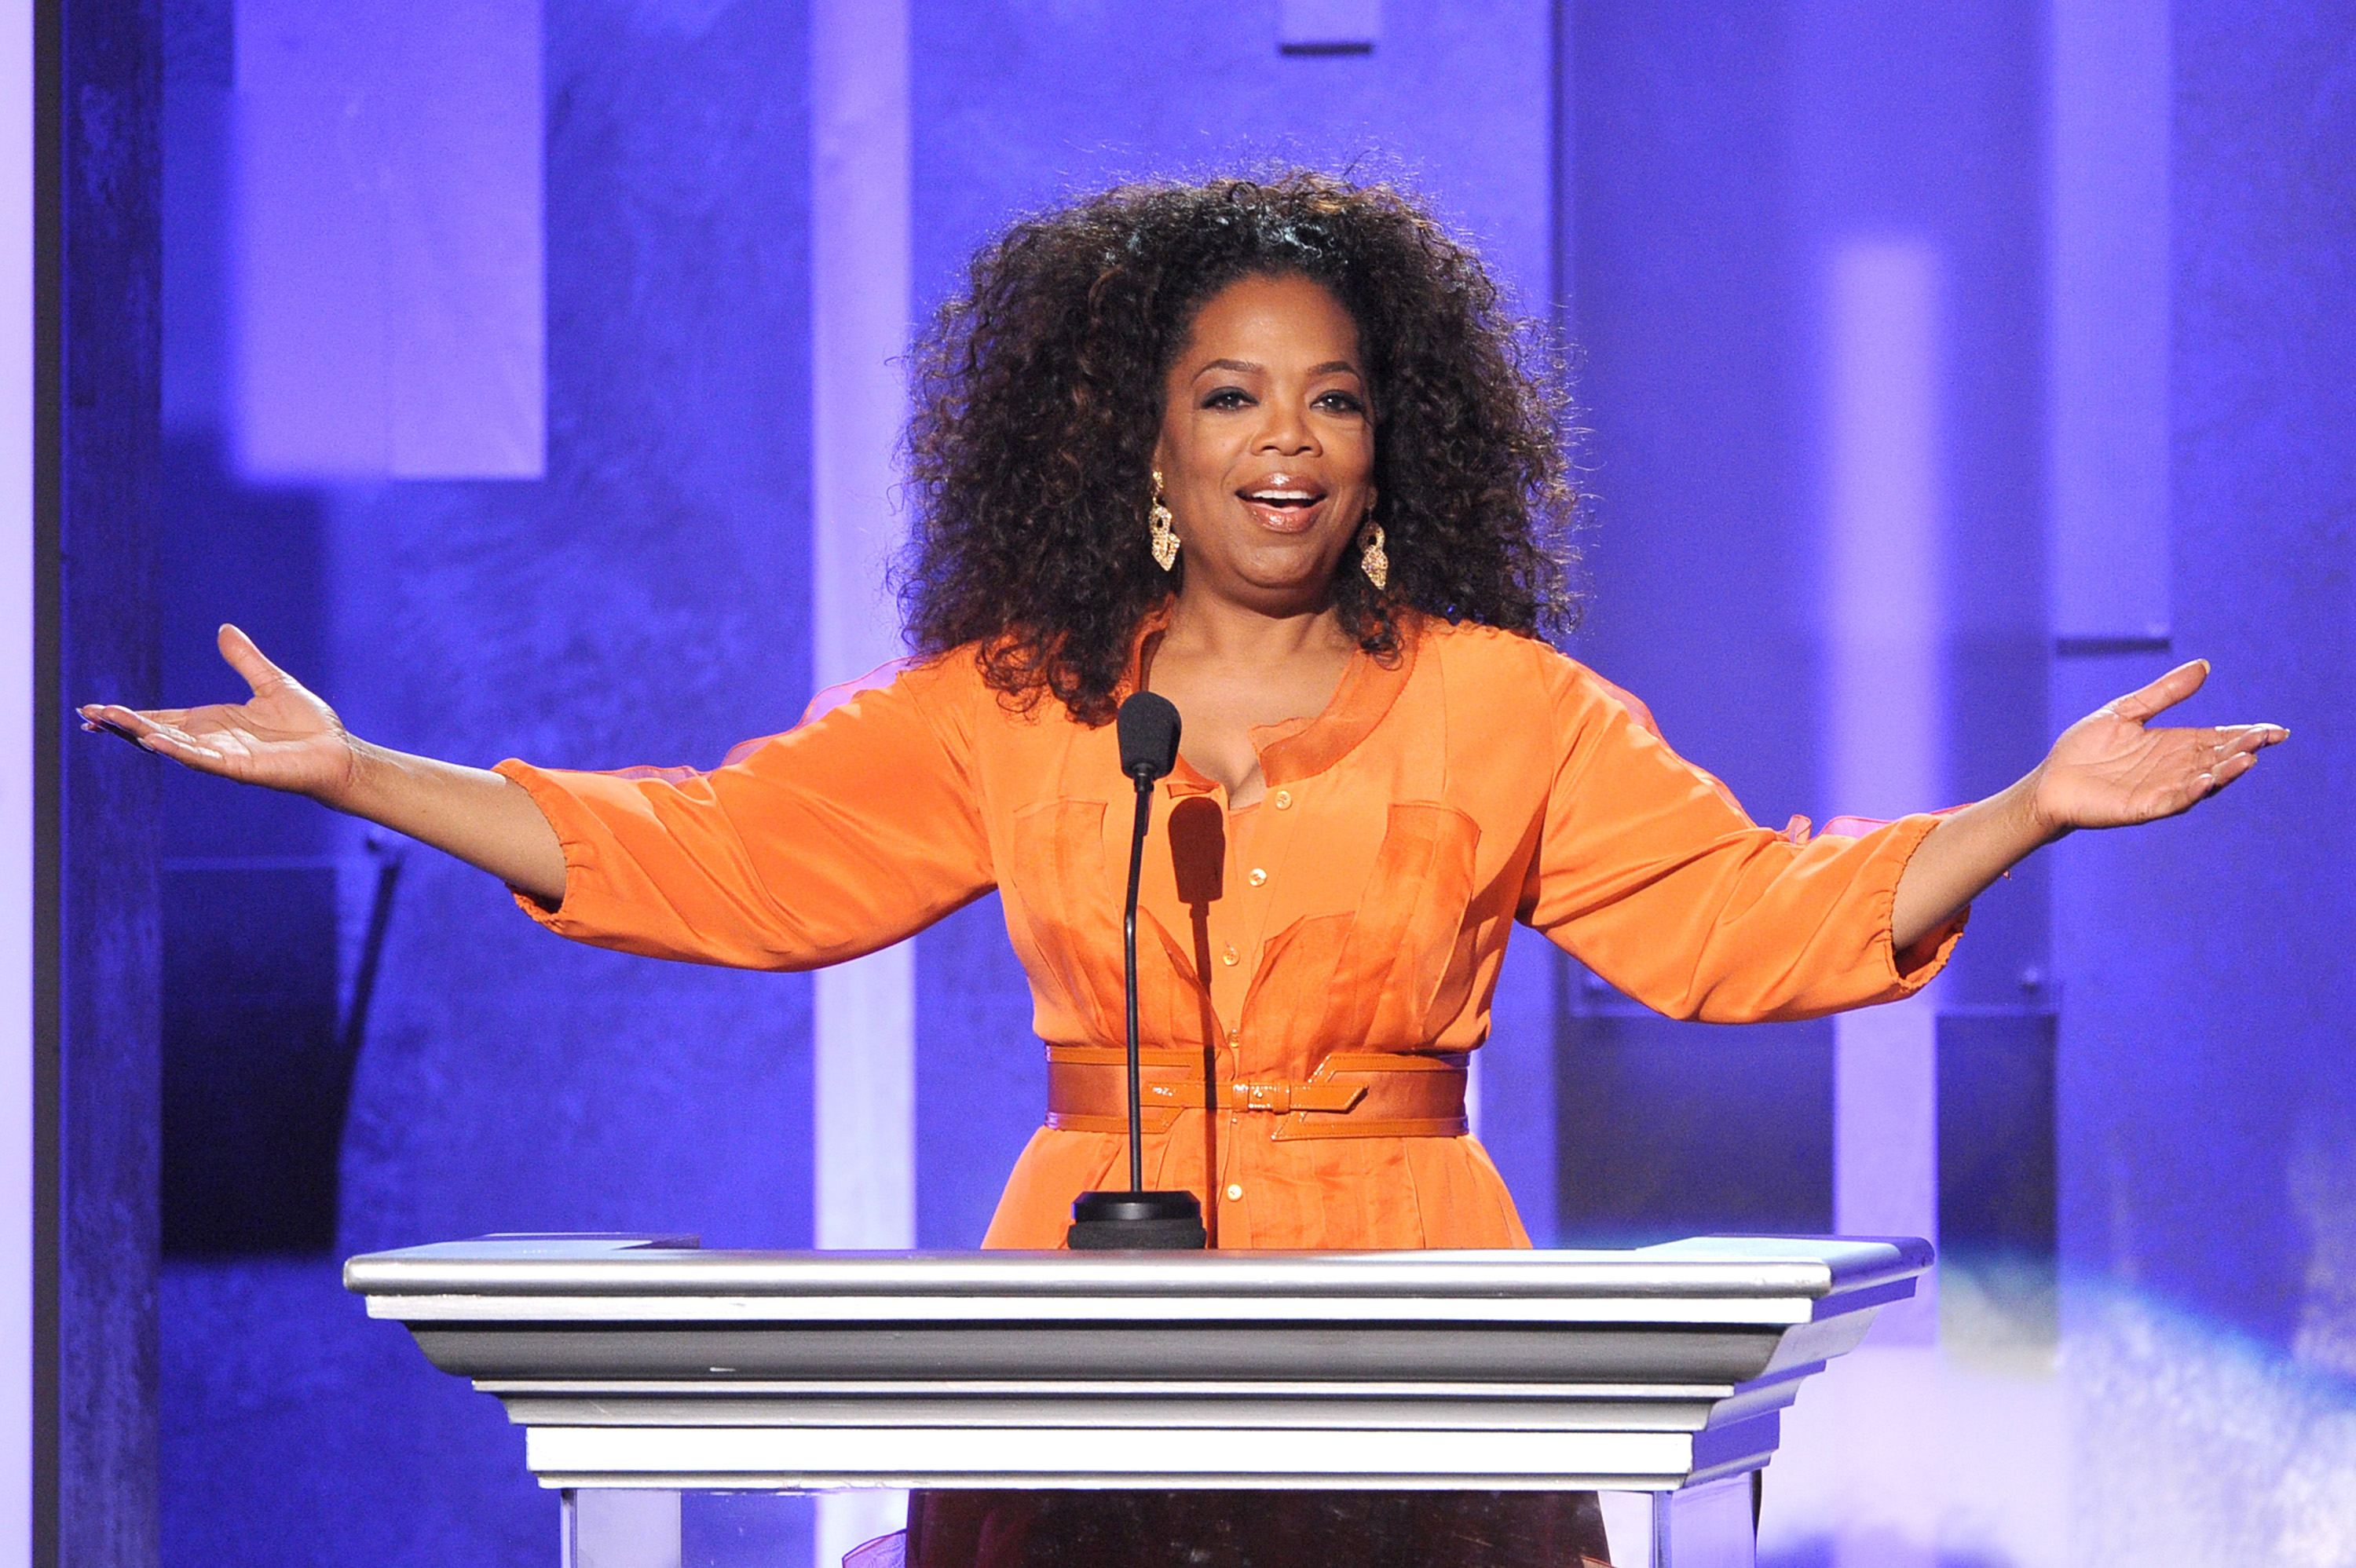 Oprah Winfrey celebrated the 30th anniversary of her scholarship fund at Morehouse College and made an additional $13 million donation to the program.